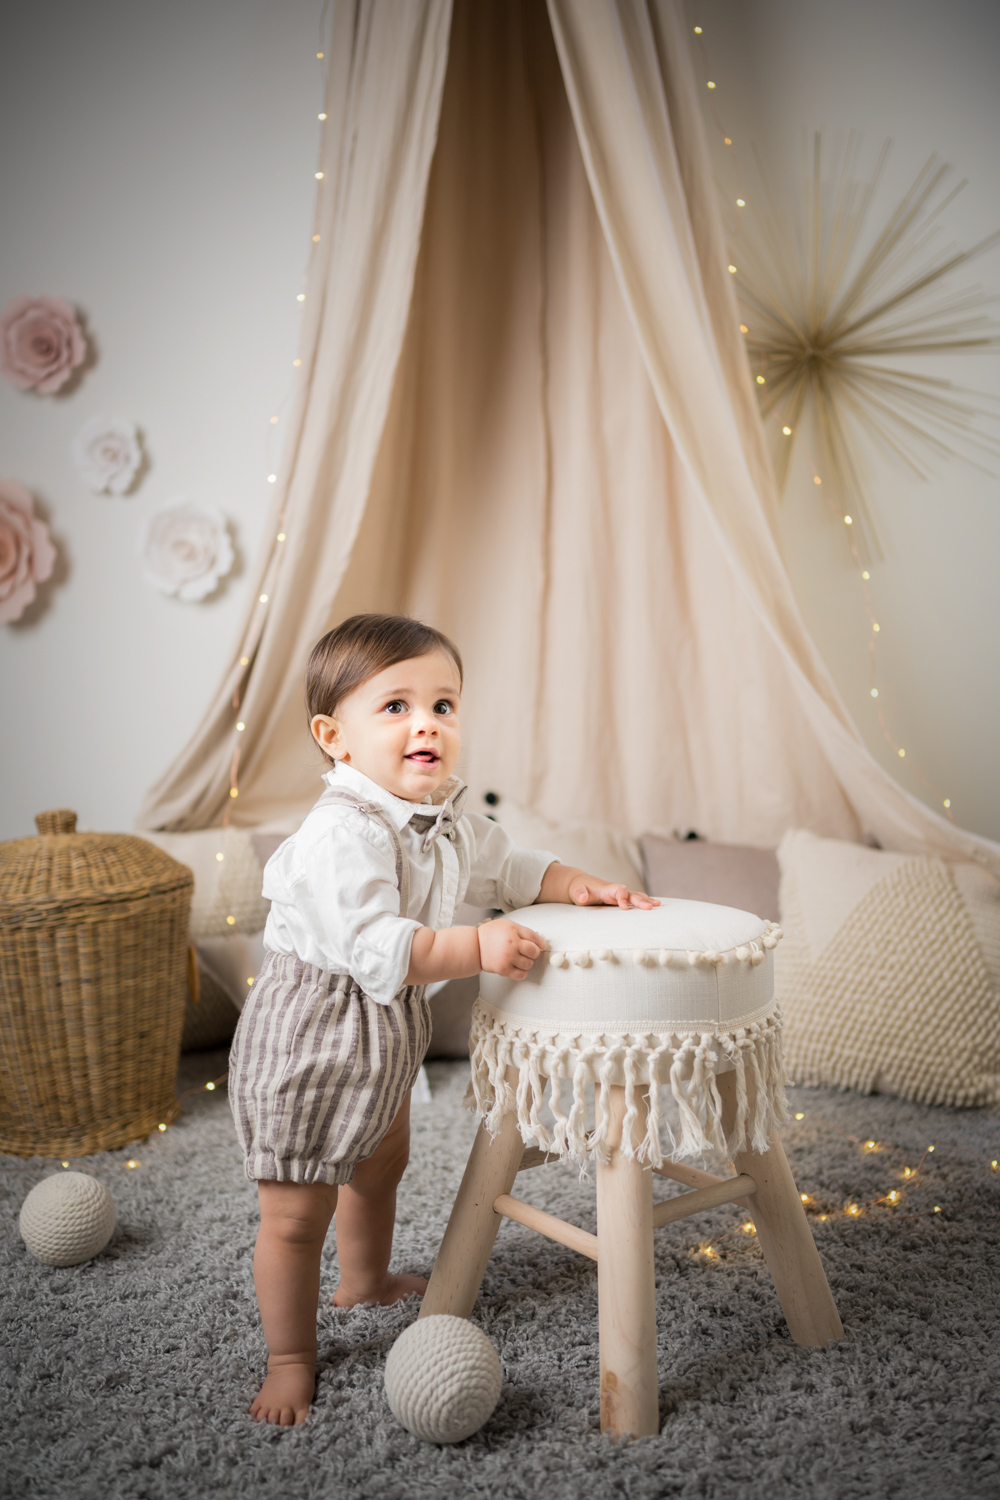 Baby boy holds onto a decorative stool during a photo session.